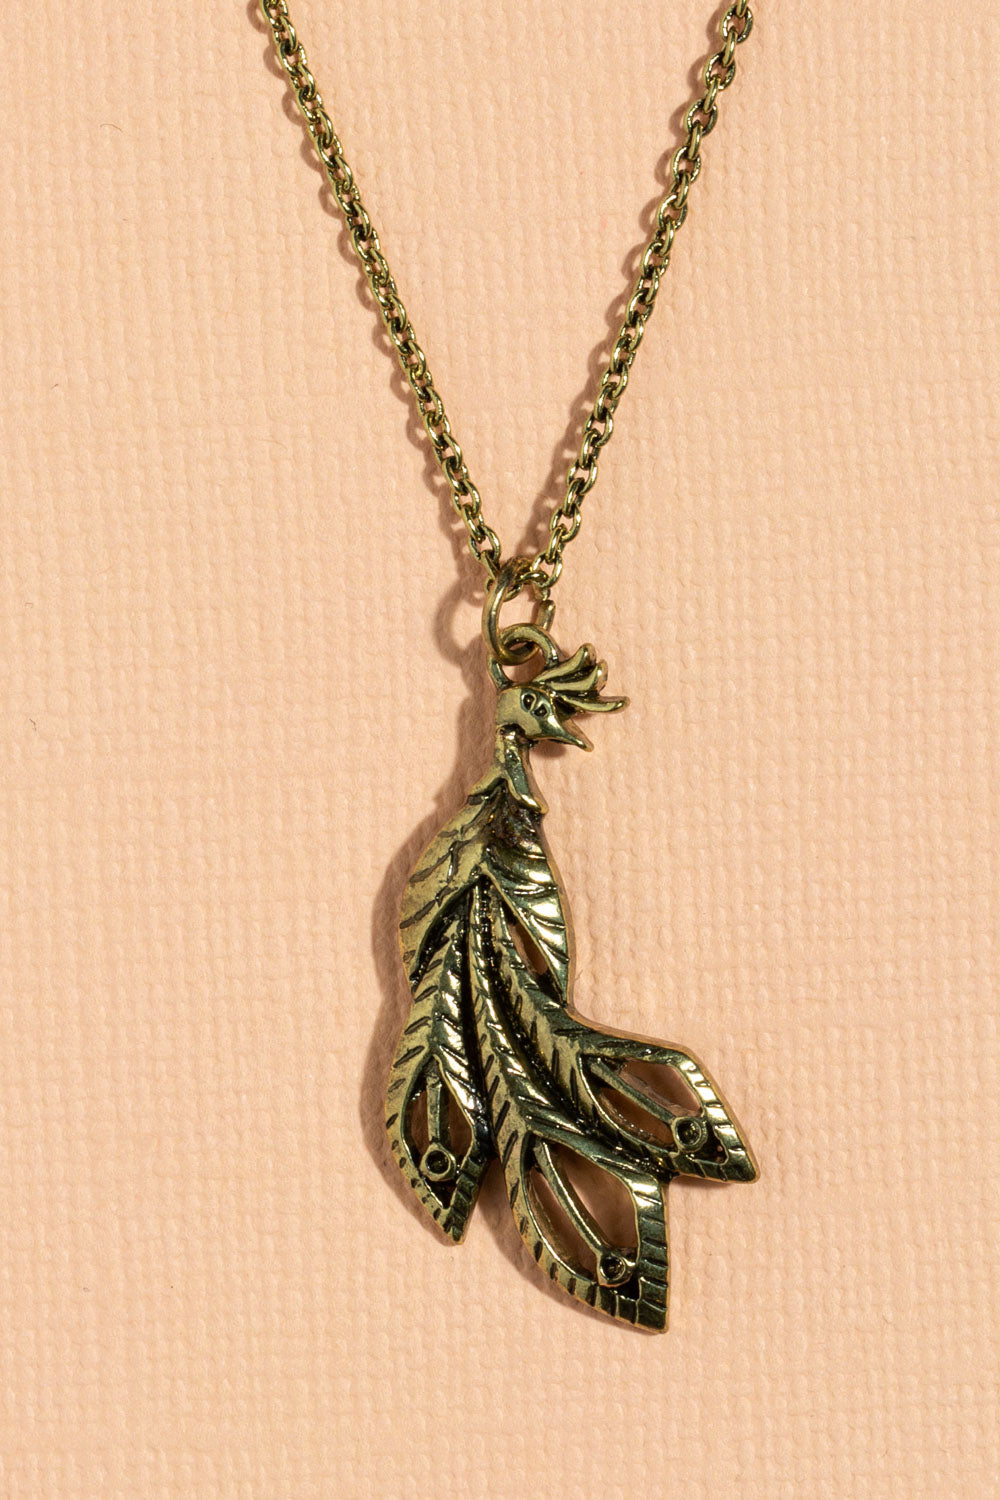 Type 3 Peacock Necklace - Gold